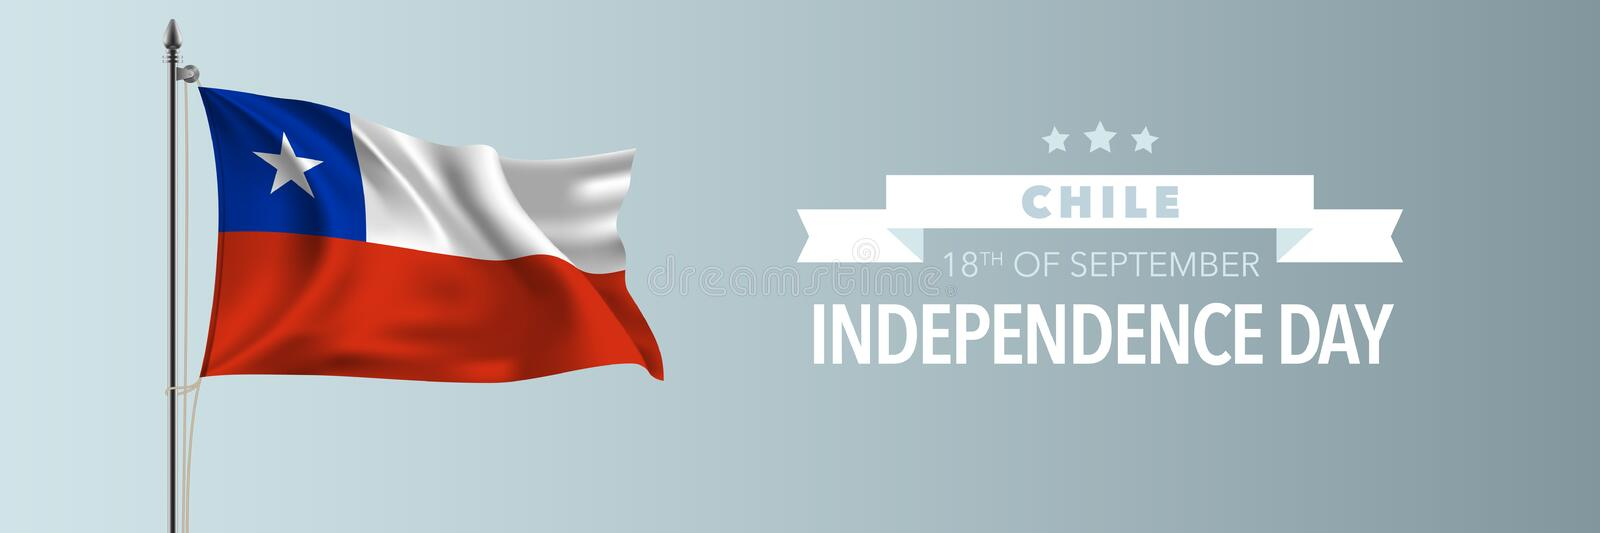 Chile happy independence day greeting card, banner vector illustration stock image